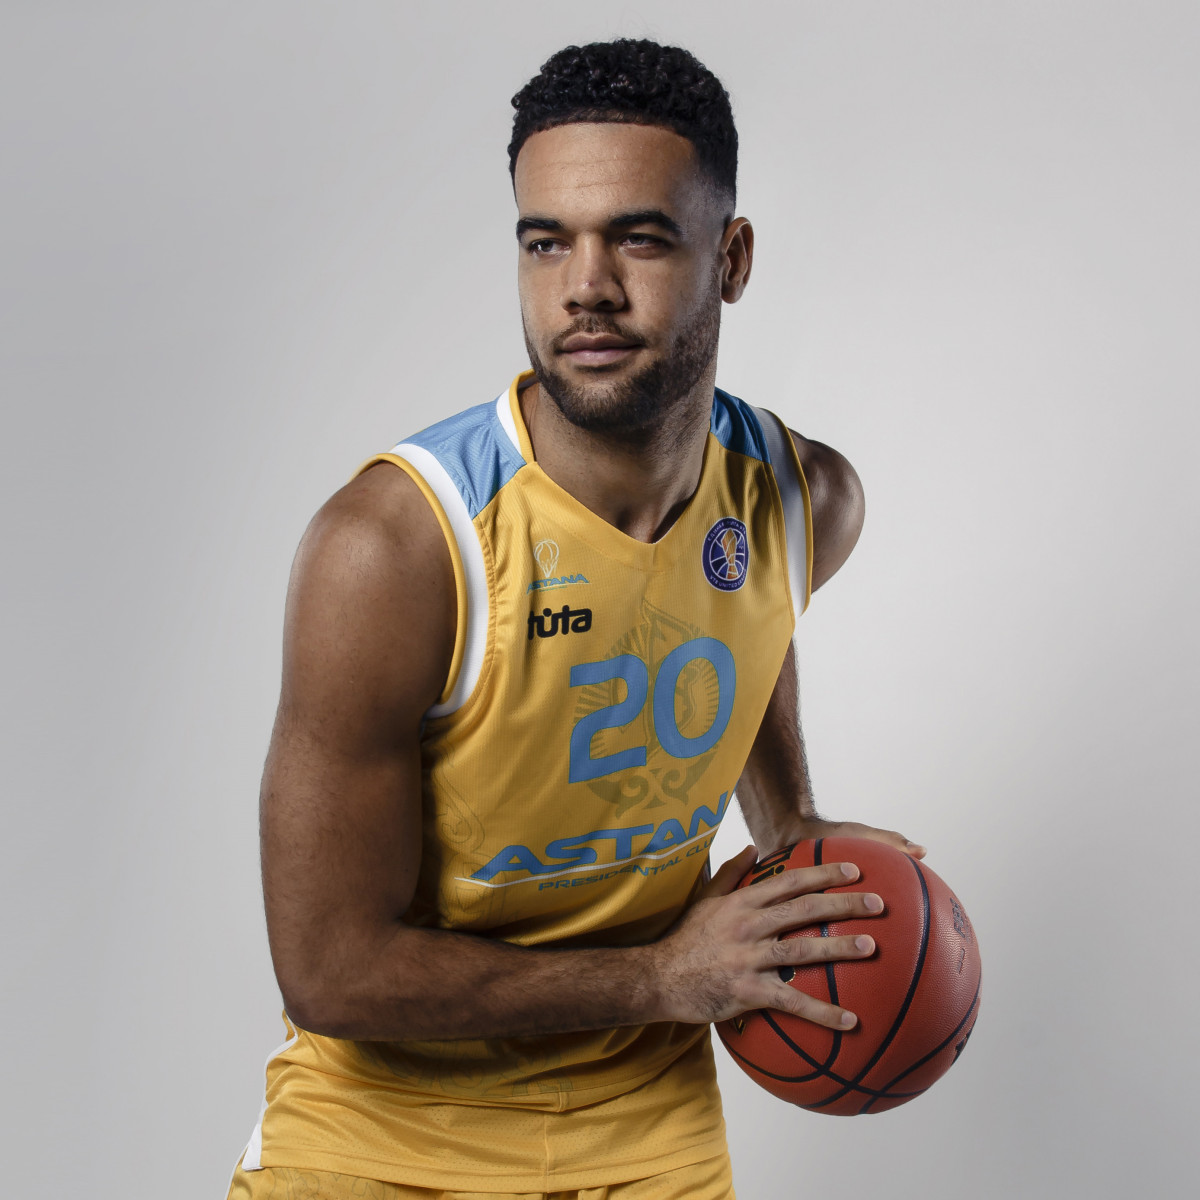 Photo of Jaleel O'brien, 2018-2019 season